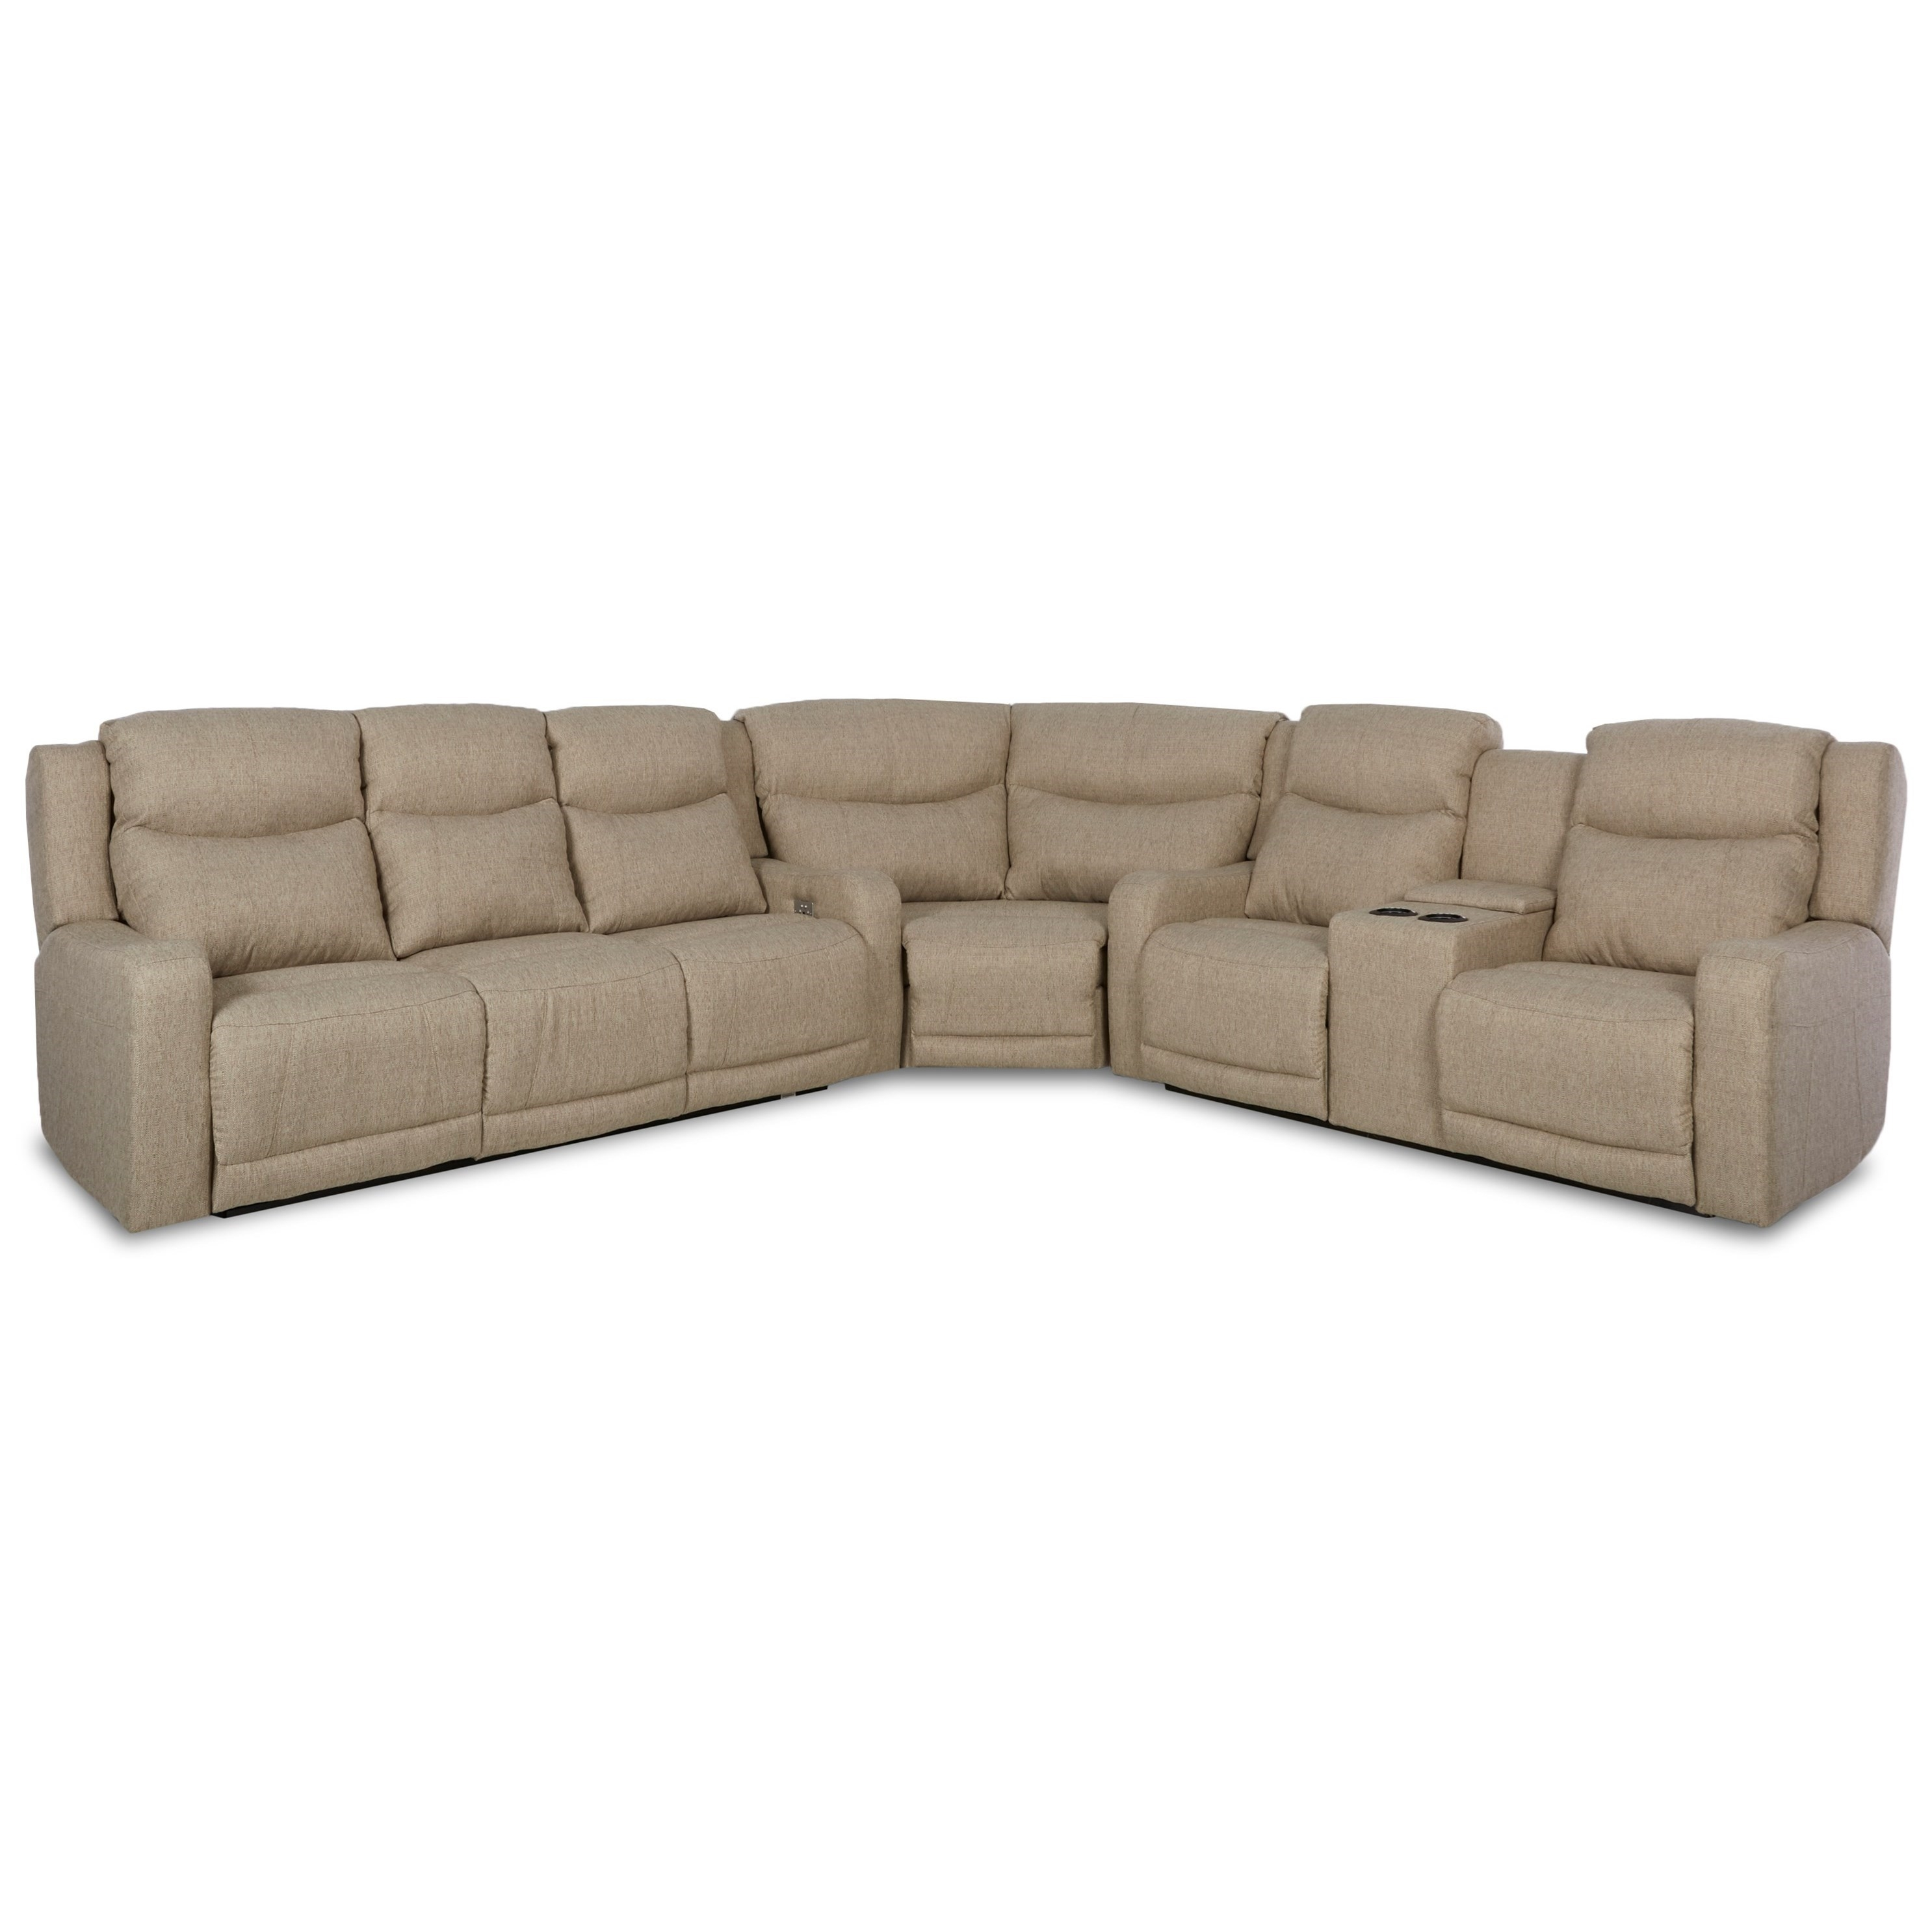 Elegant Electric Reclining Sectional Sofa – Sofas Within Clyde Grey Leather 3 Piece Power Reclining Sectionals With Pwr Hdrst & Usb (Image 5 of 25)